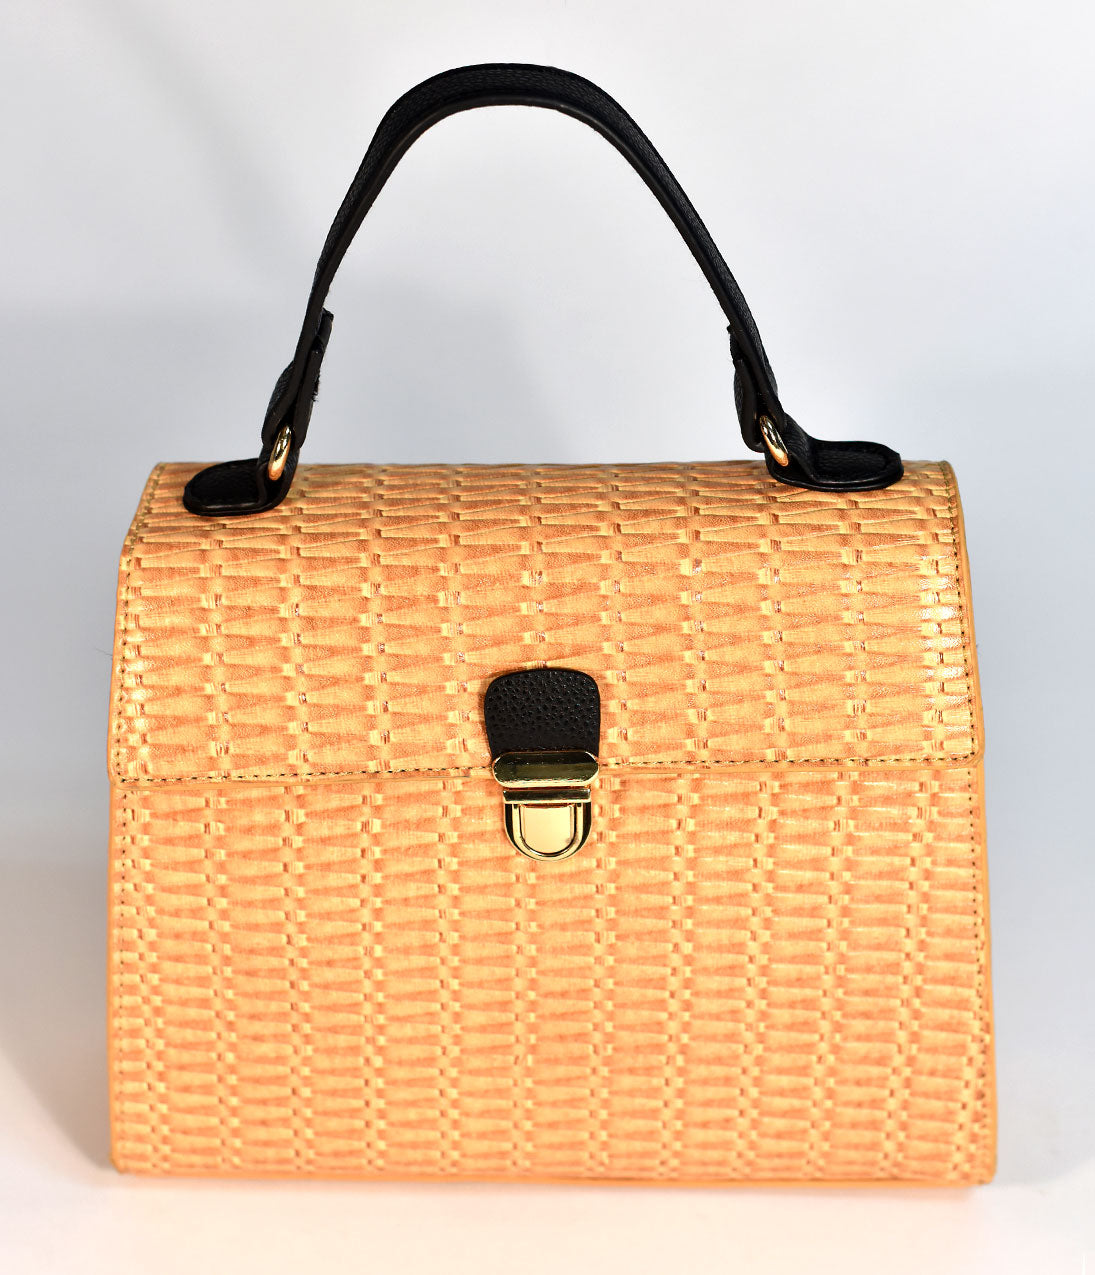 Vintage & Retro Handbags, Purses, Wallets, Bags Tan Leatherette Wicker Pattern Crossbody Purse $44.00 AT vintagedancer.com